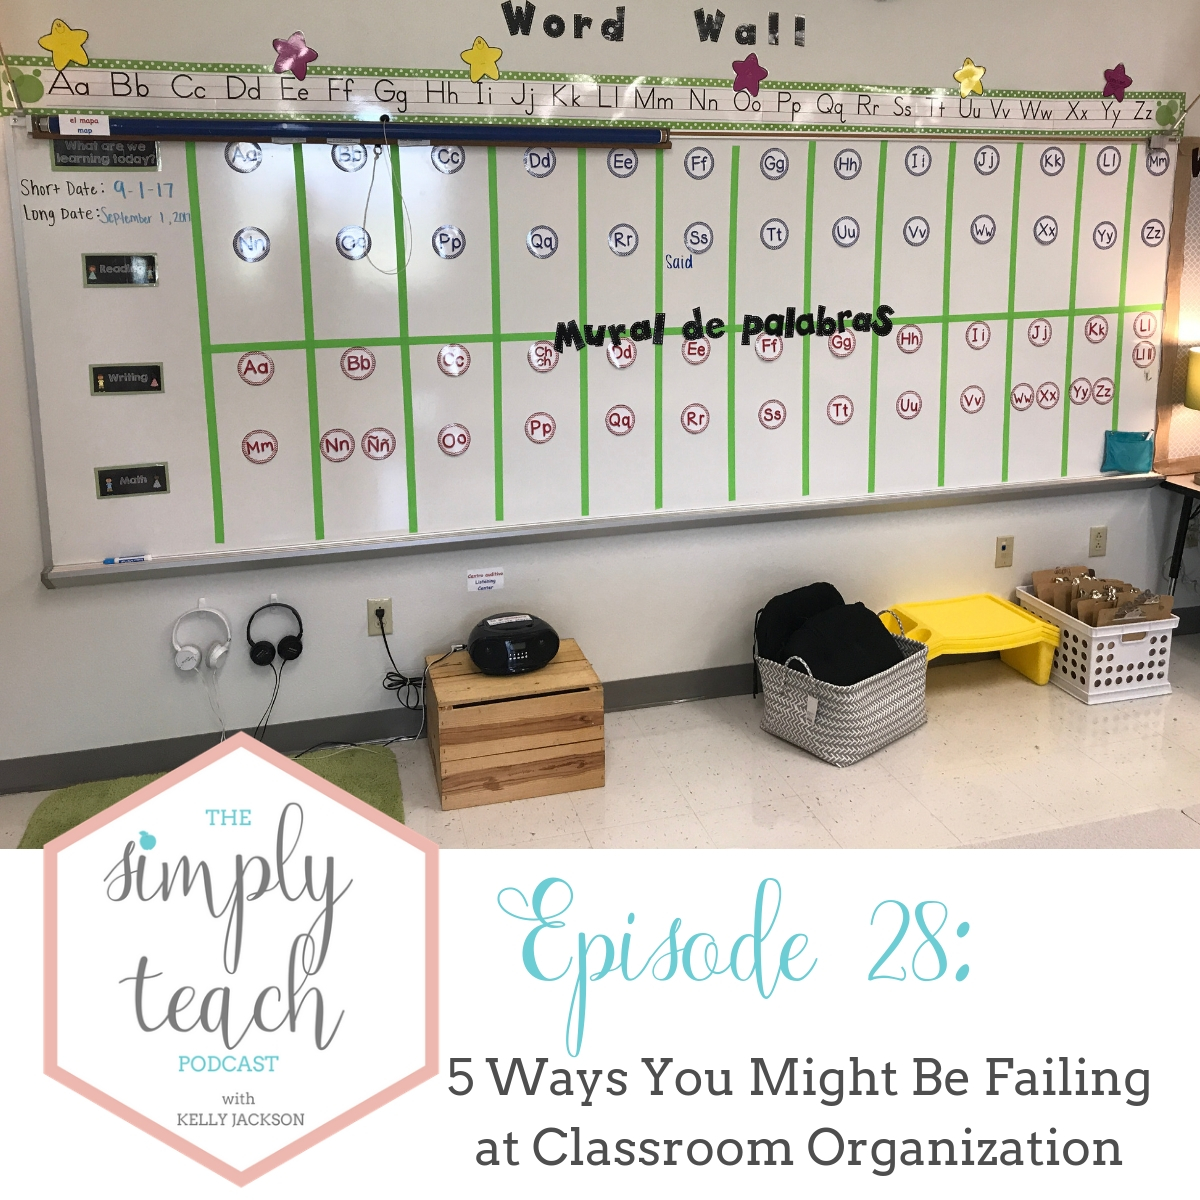 Looking to improve your classroom organization? This blog shares 5 ways you might be failing at classroom organization and how you can improve in those areas!